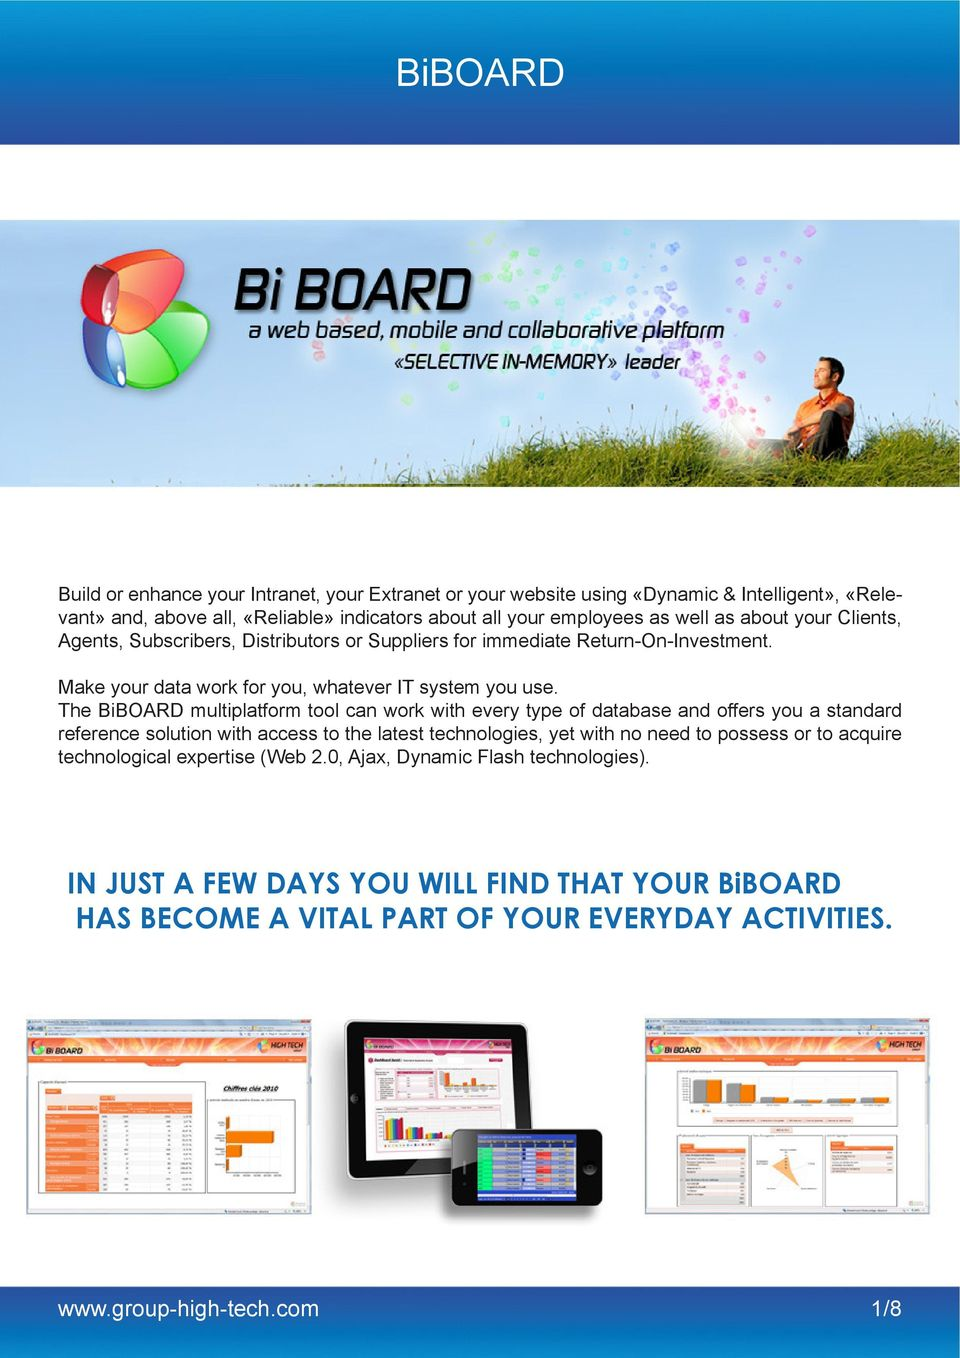 The BiBOARD multiplatform tool can work with every type of database and offers you a standard reference solution with access to the latest technologies, yet with no need to